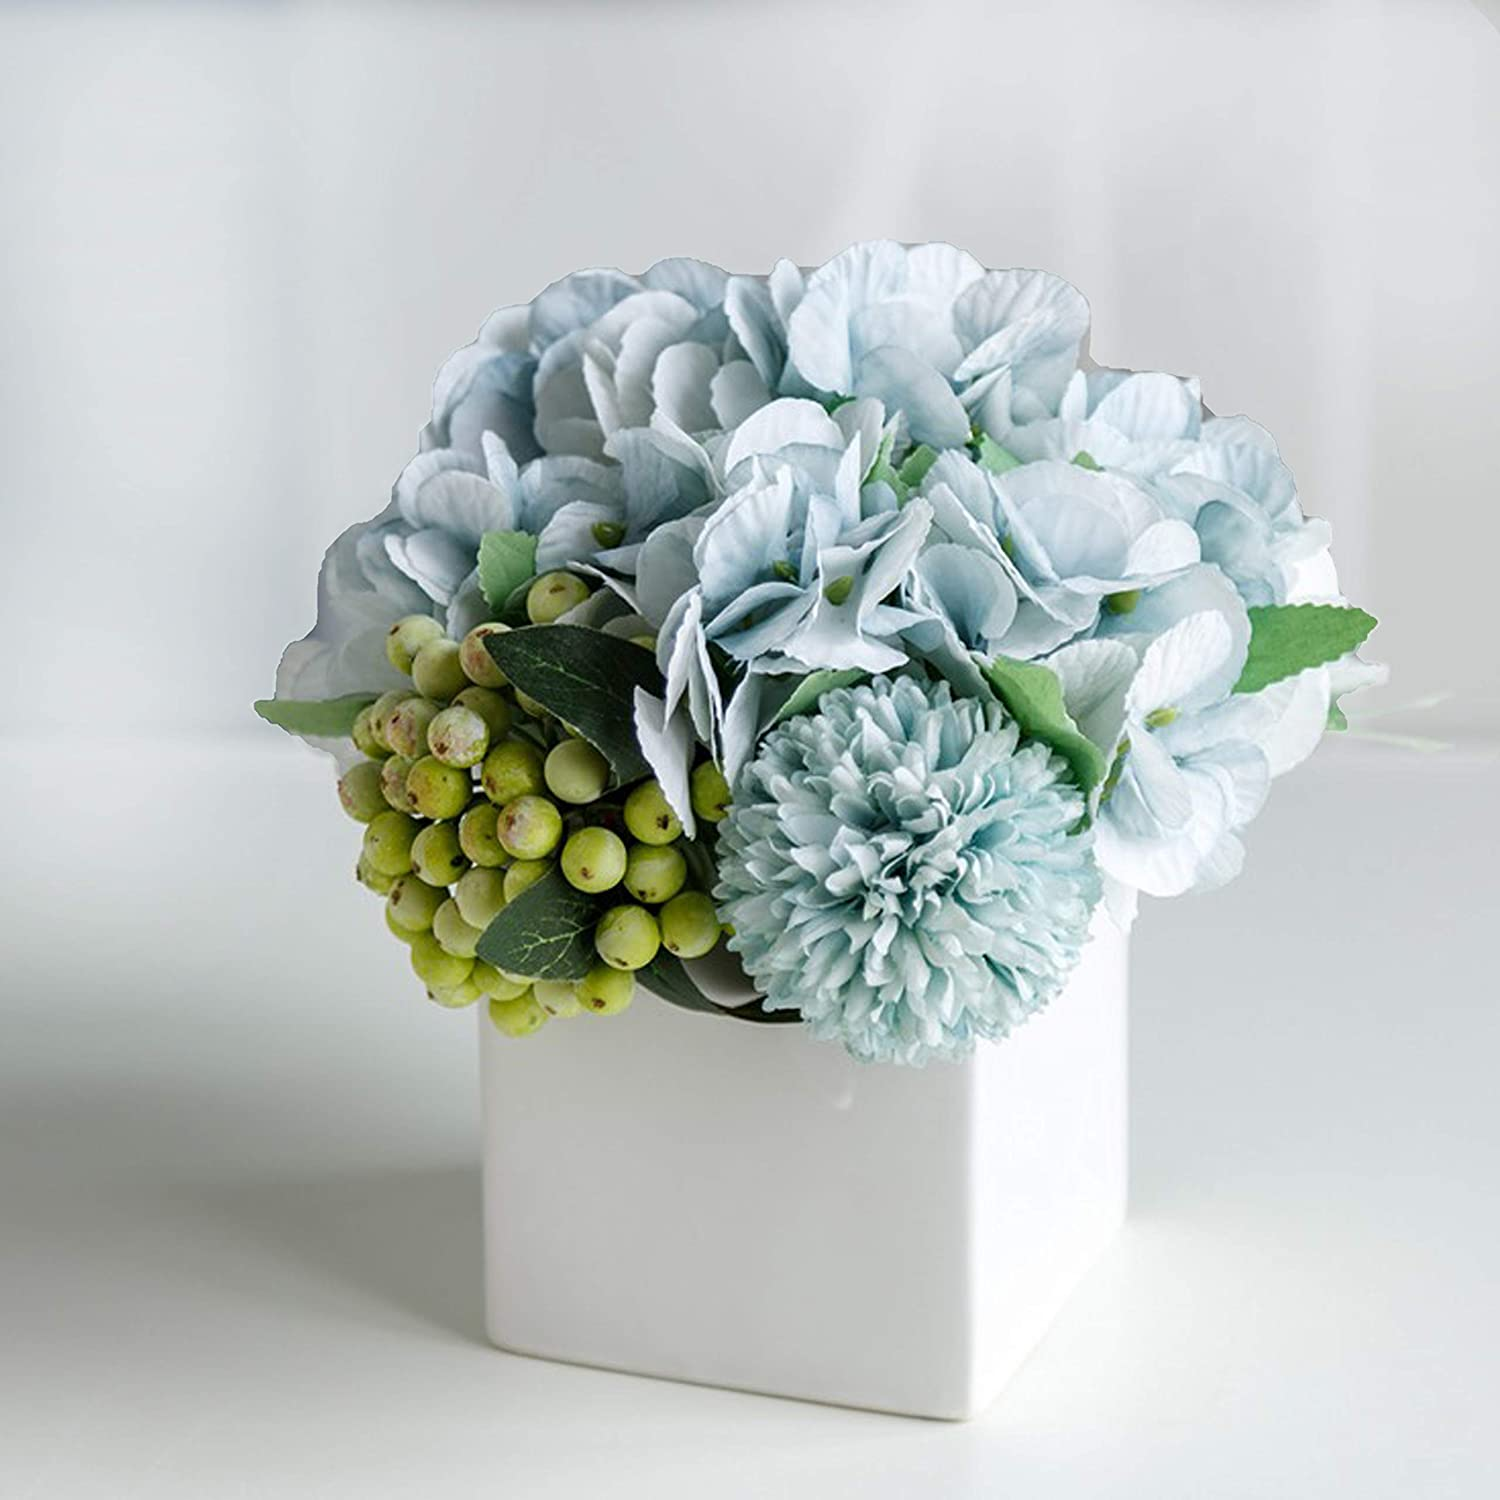 LADADA Fake Peony Flowers in Ceramic Vase,Faux Hydrangea Flower Arrangements for Home Decor Artificial Flowers with Vase